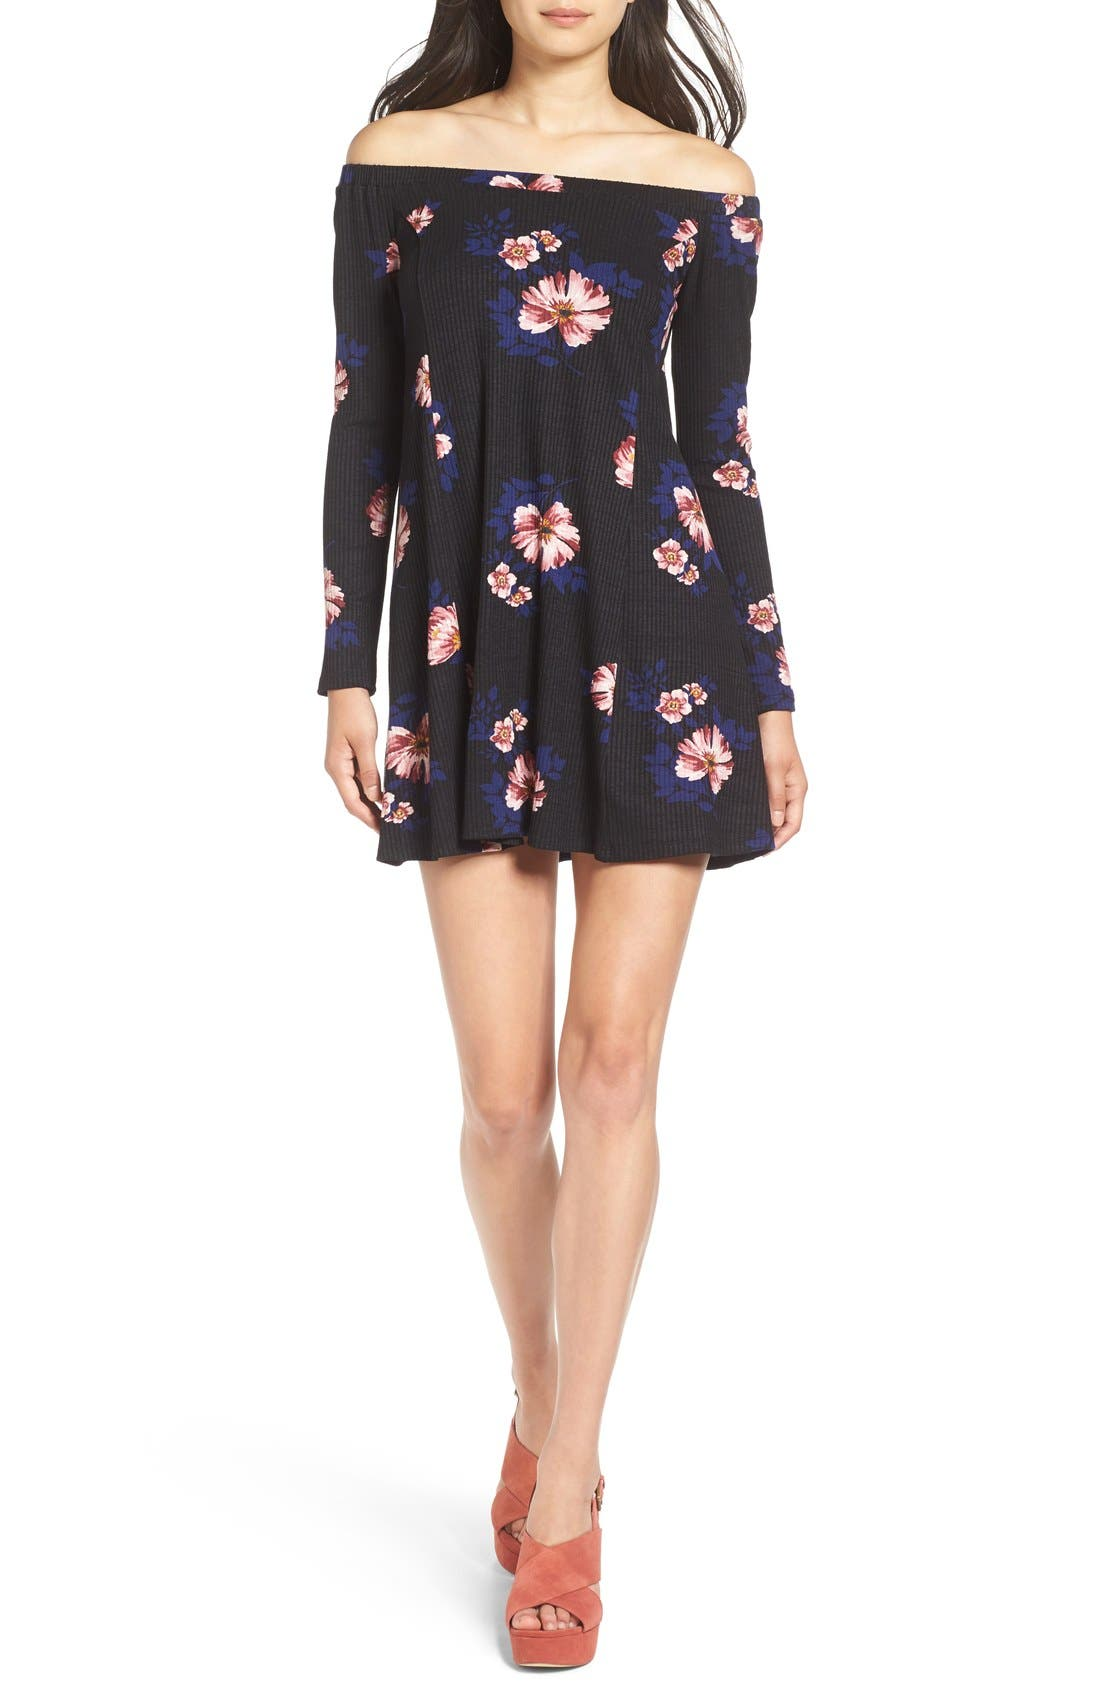 Alternate Image 1 Selected - Lush Off the Shoulder Floral Print Dress